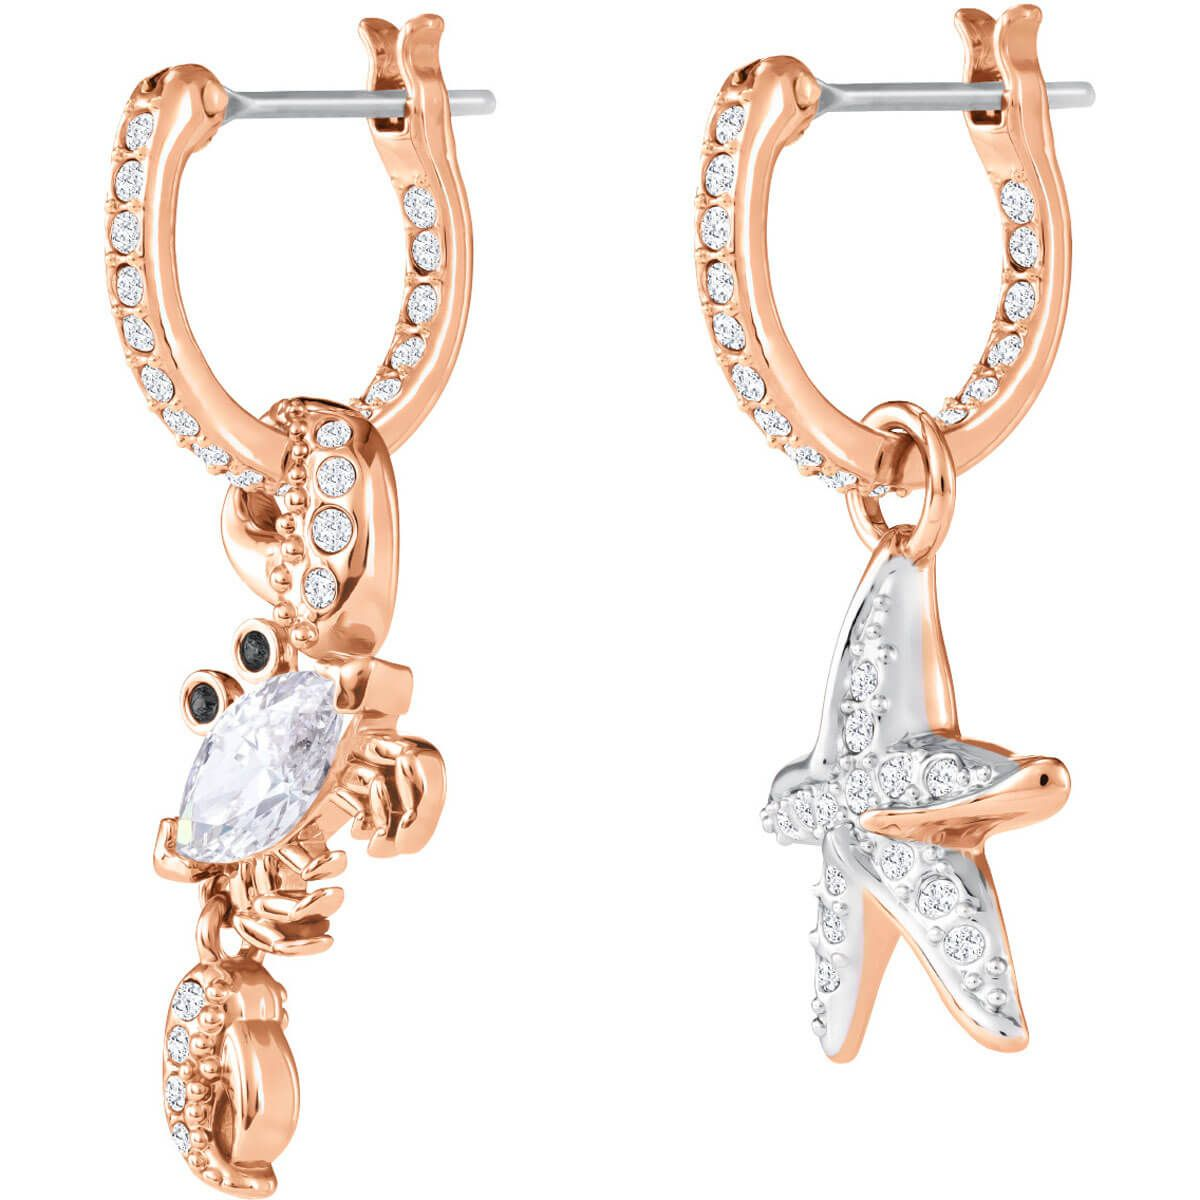 91763a4db Ocean Crab Pierced Earrings, White, Rose gold plating exclusively on  Swarovski.com